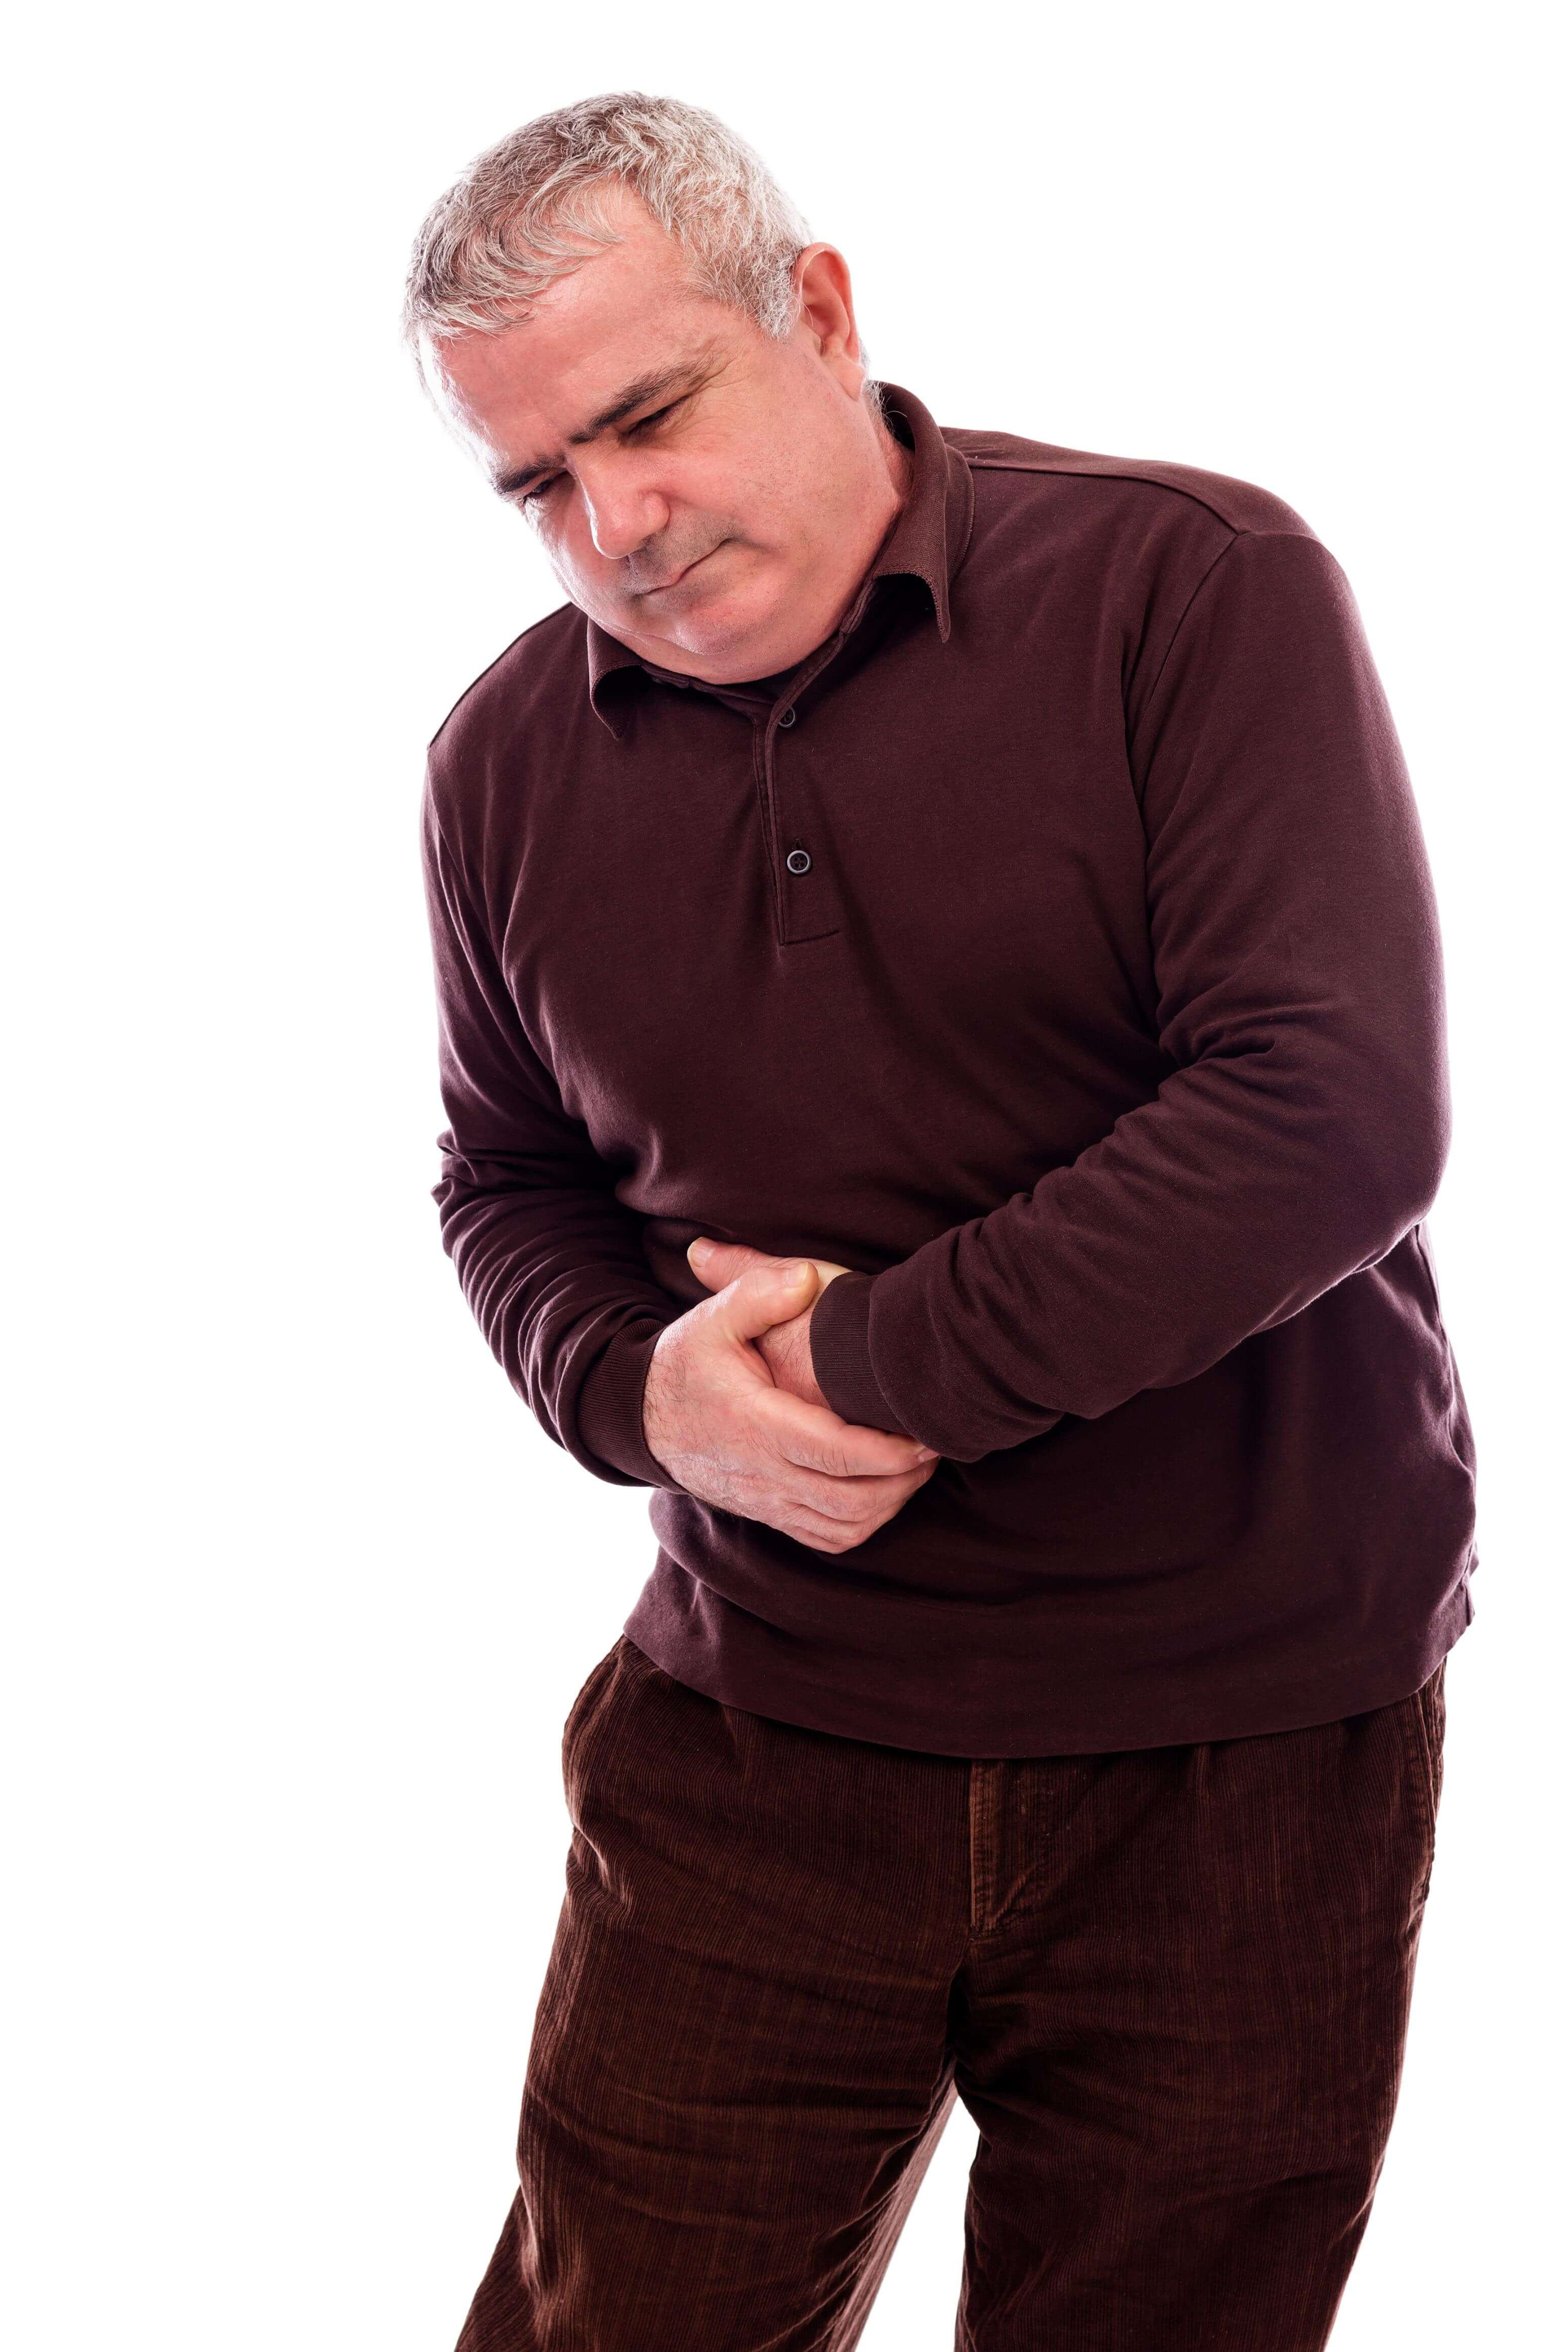 Senior man suffering from abdominal pain isolated on white background